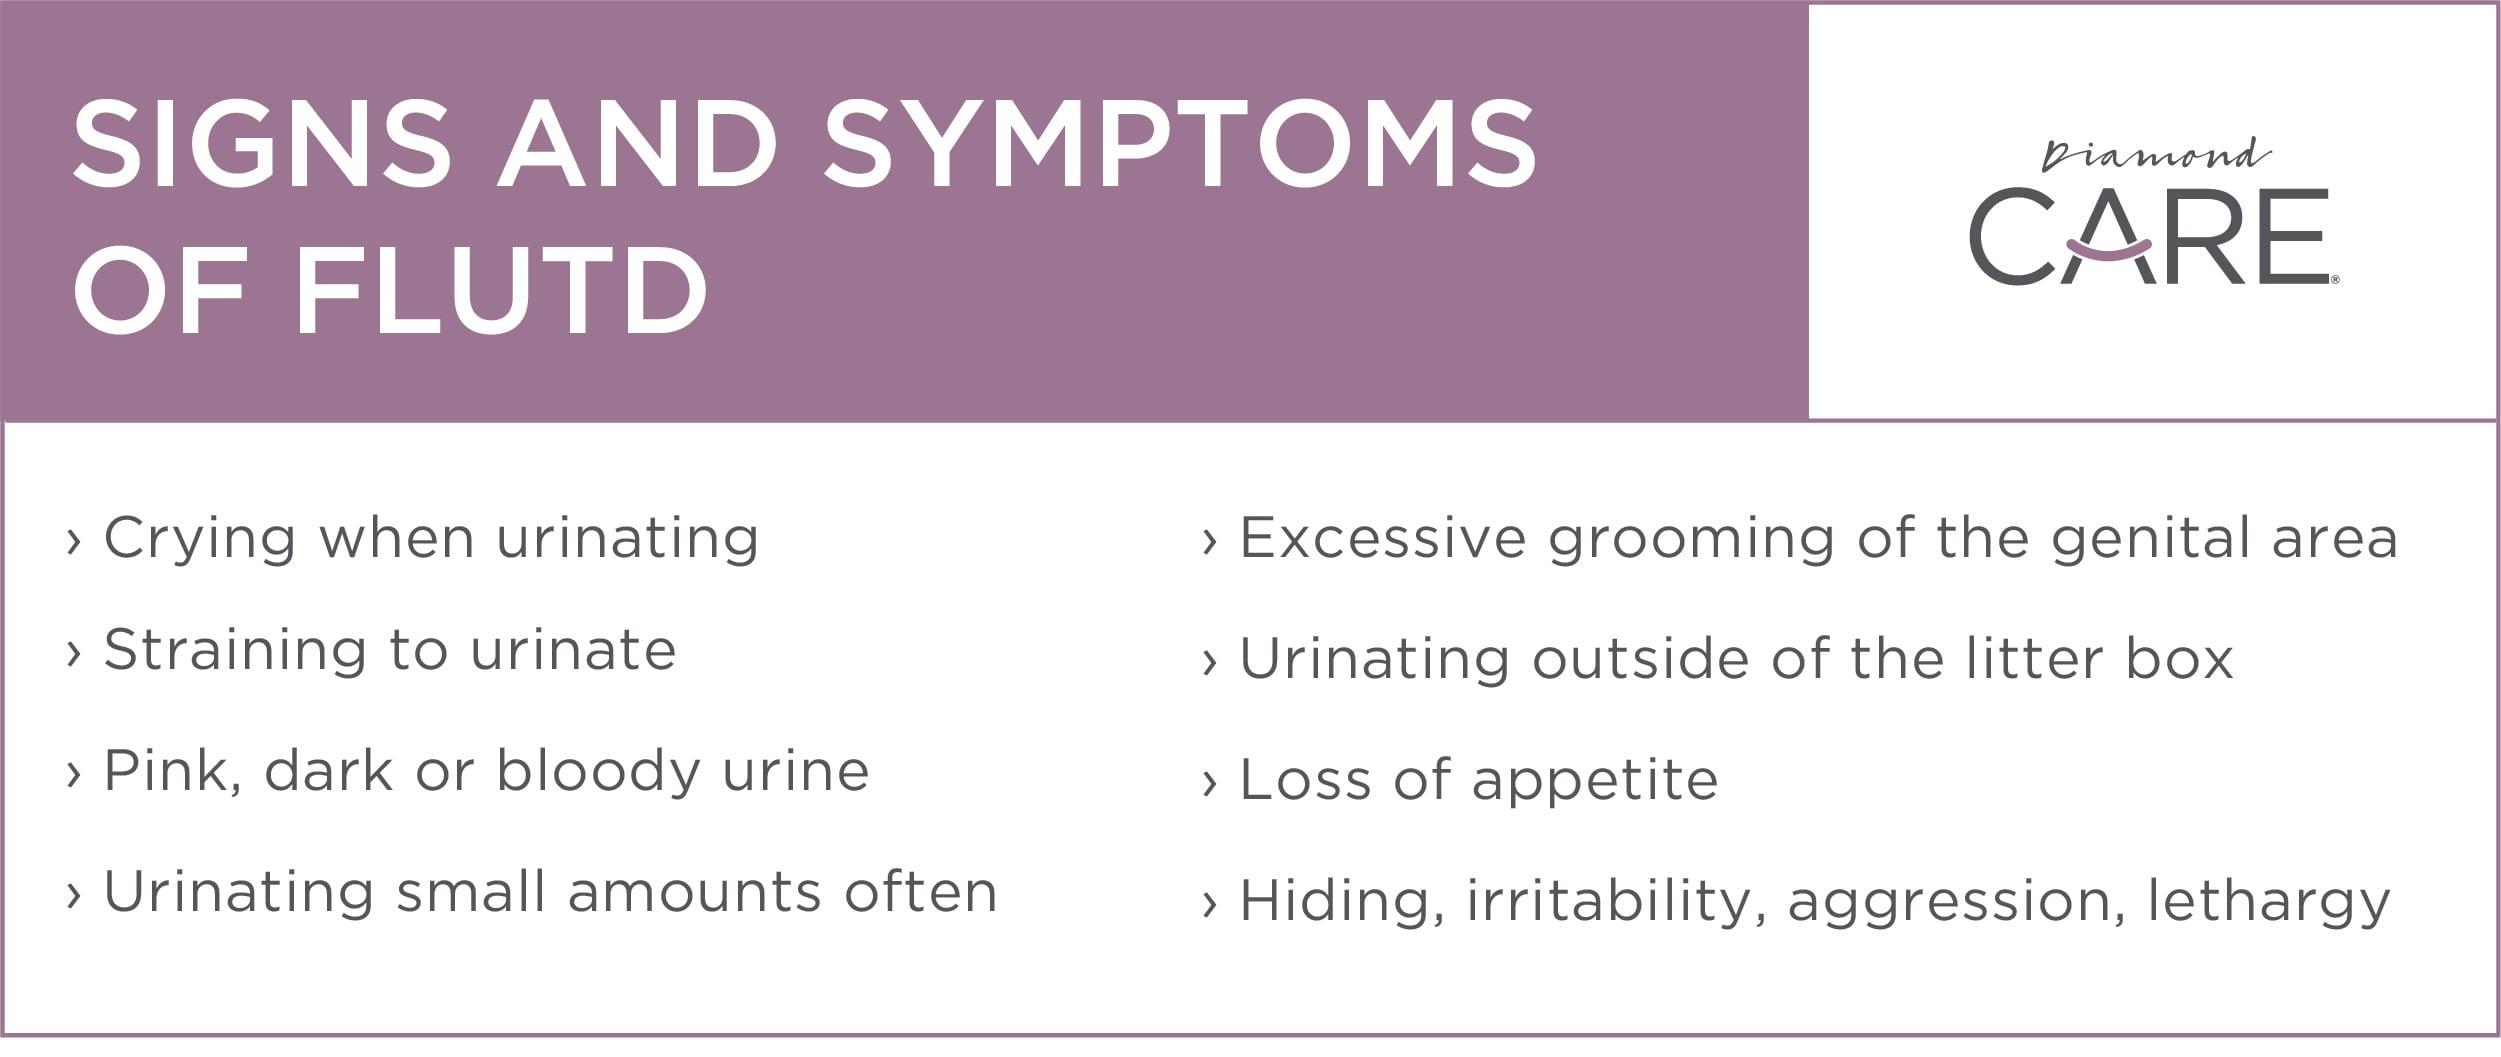 Signs and Symptoms of FLUTD | Diamond Pet Foods